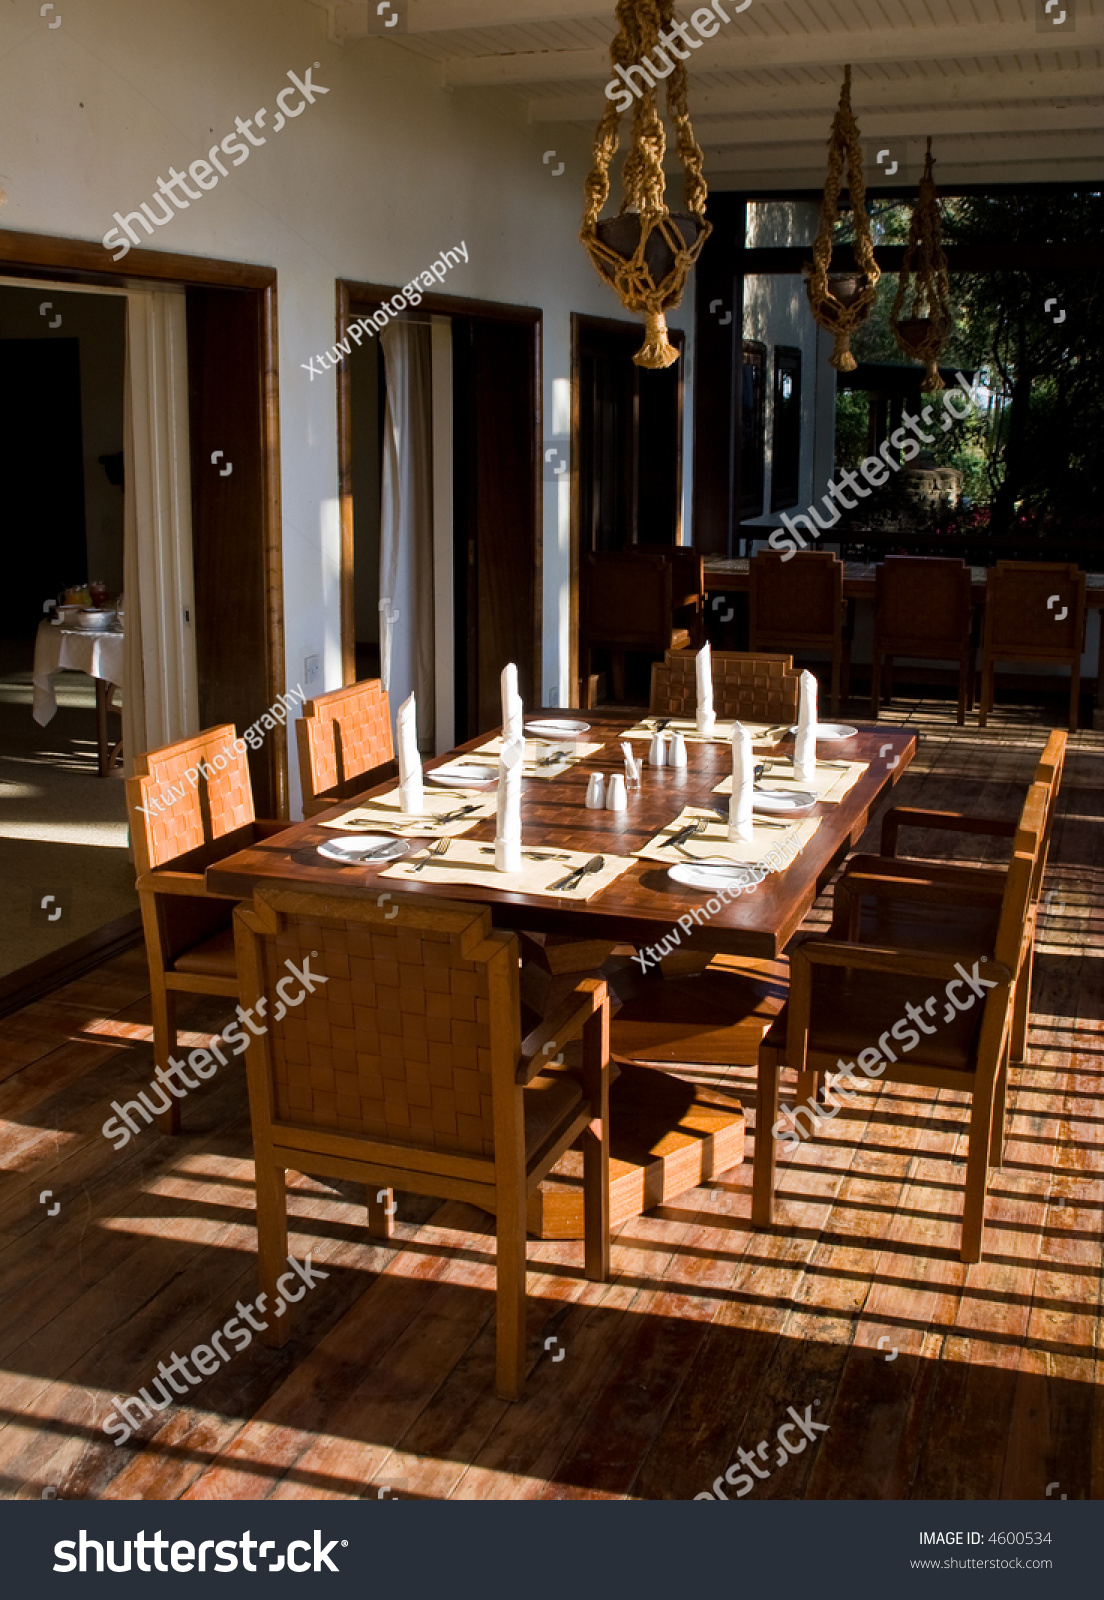 Dining Room Table Set For Dinner dining table set dinner stock photo 4600534 - shutterstock